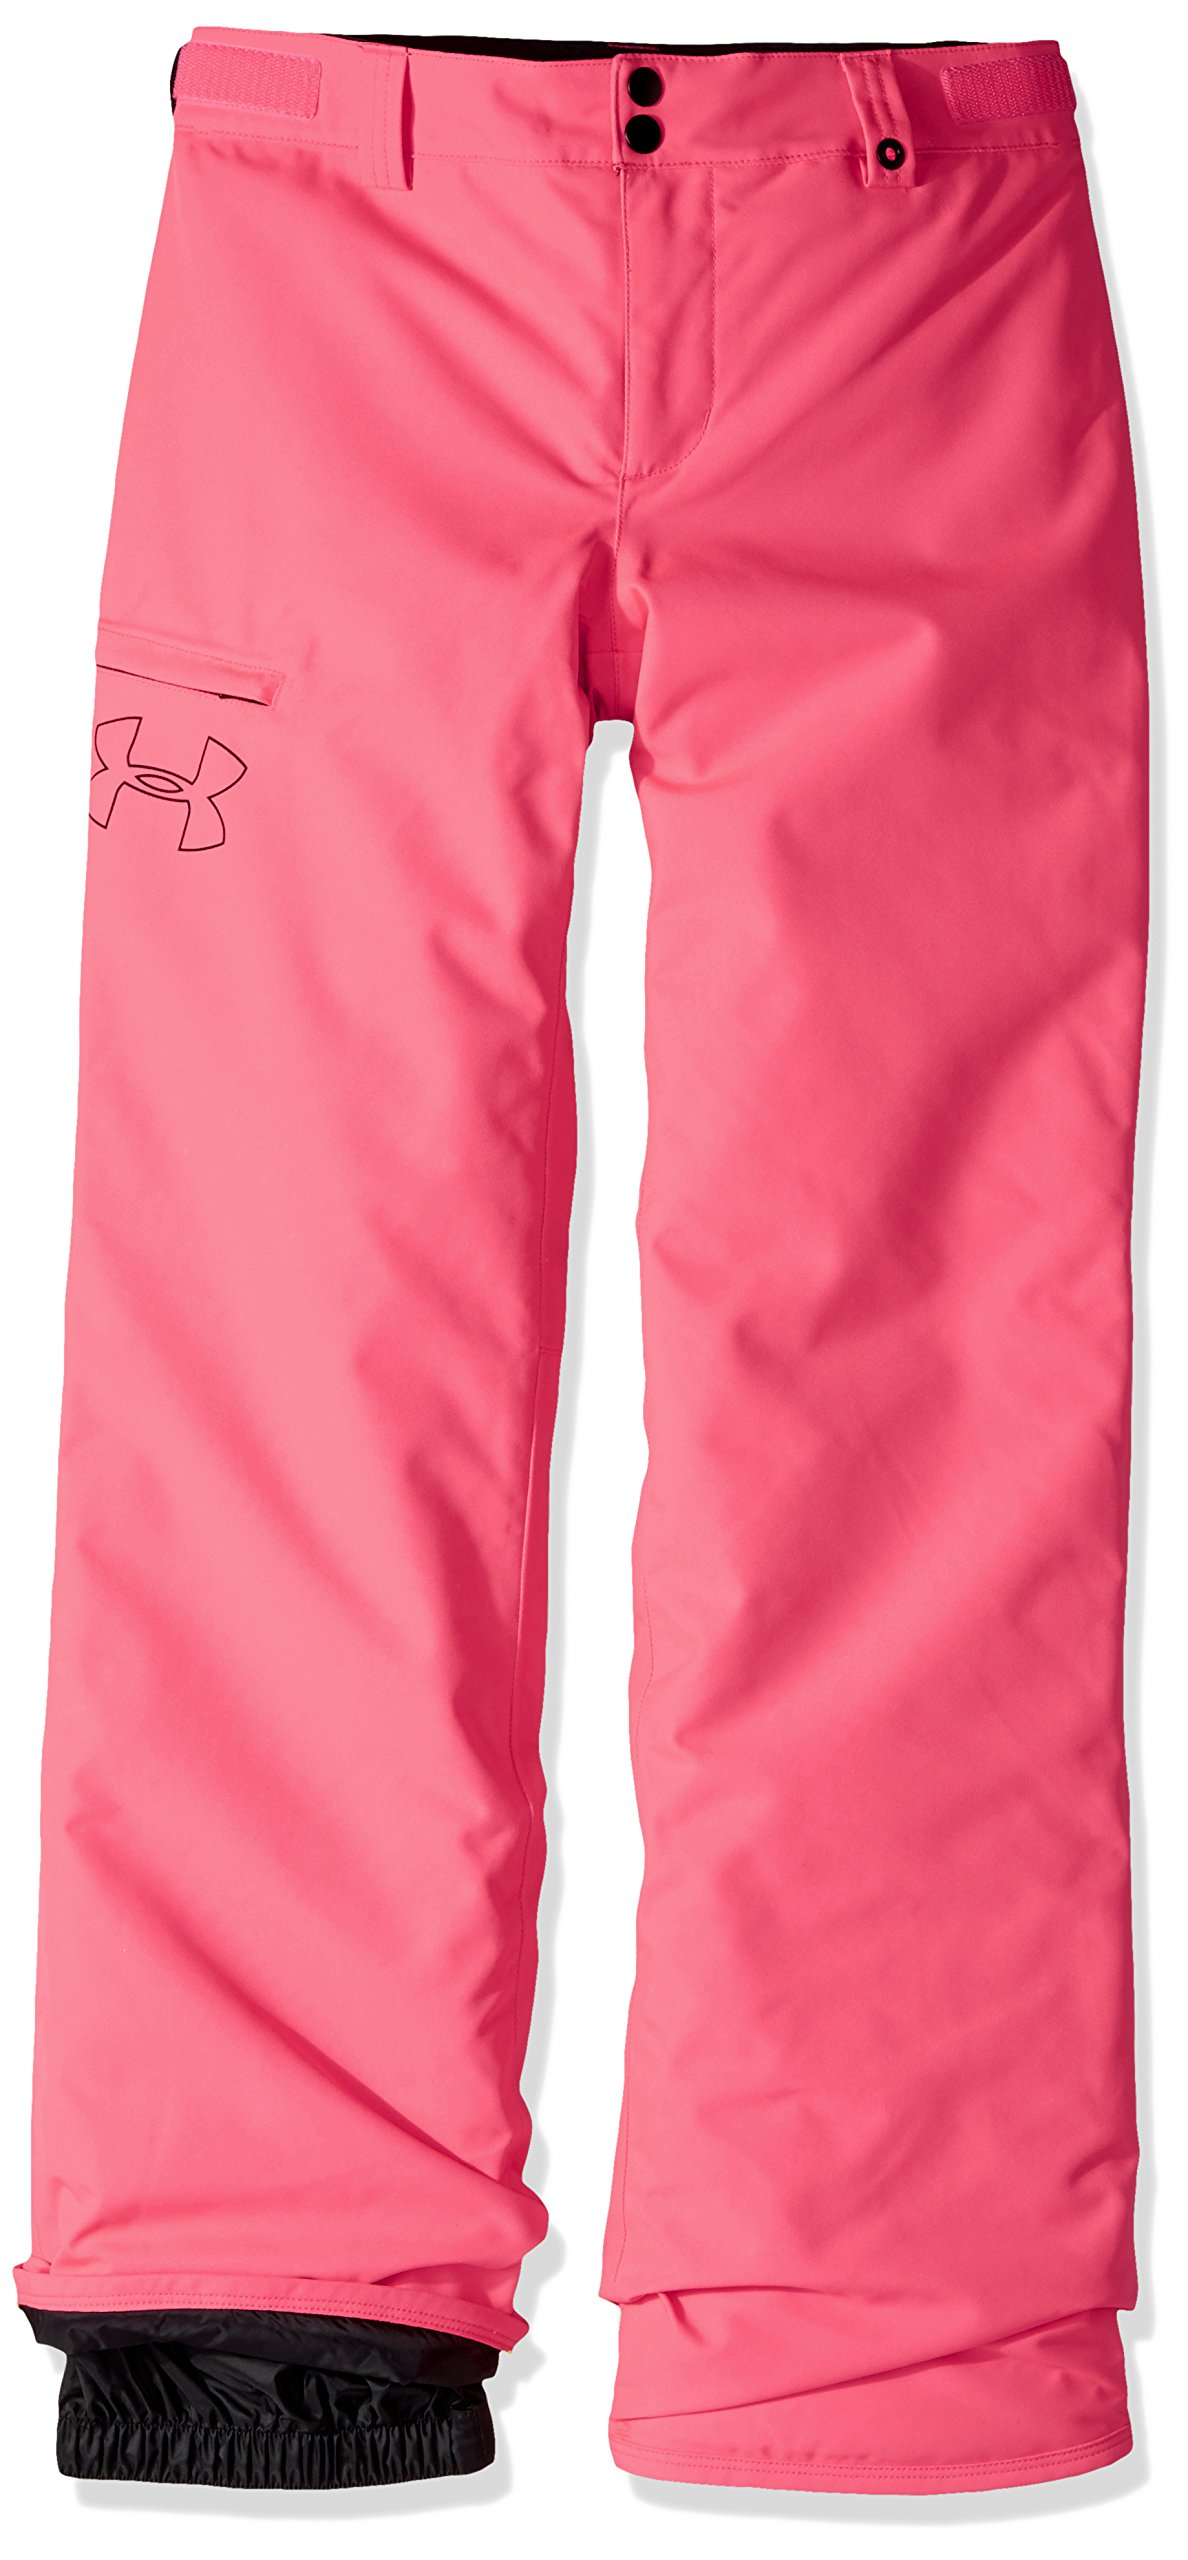 Under Armour Outerwear Youth Girls Cold Gear Infrared Chutes Insulated Pants, Penta Pink/Black, X-Large